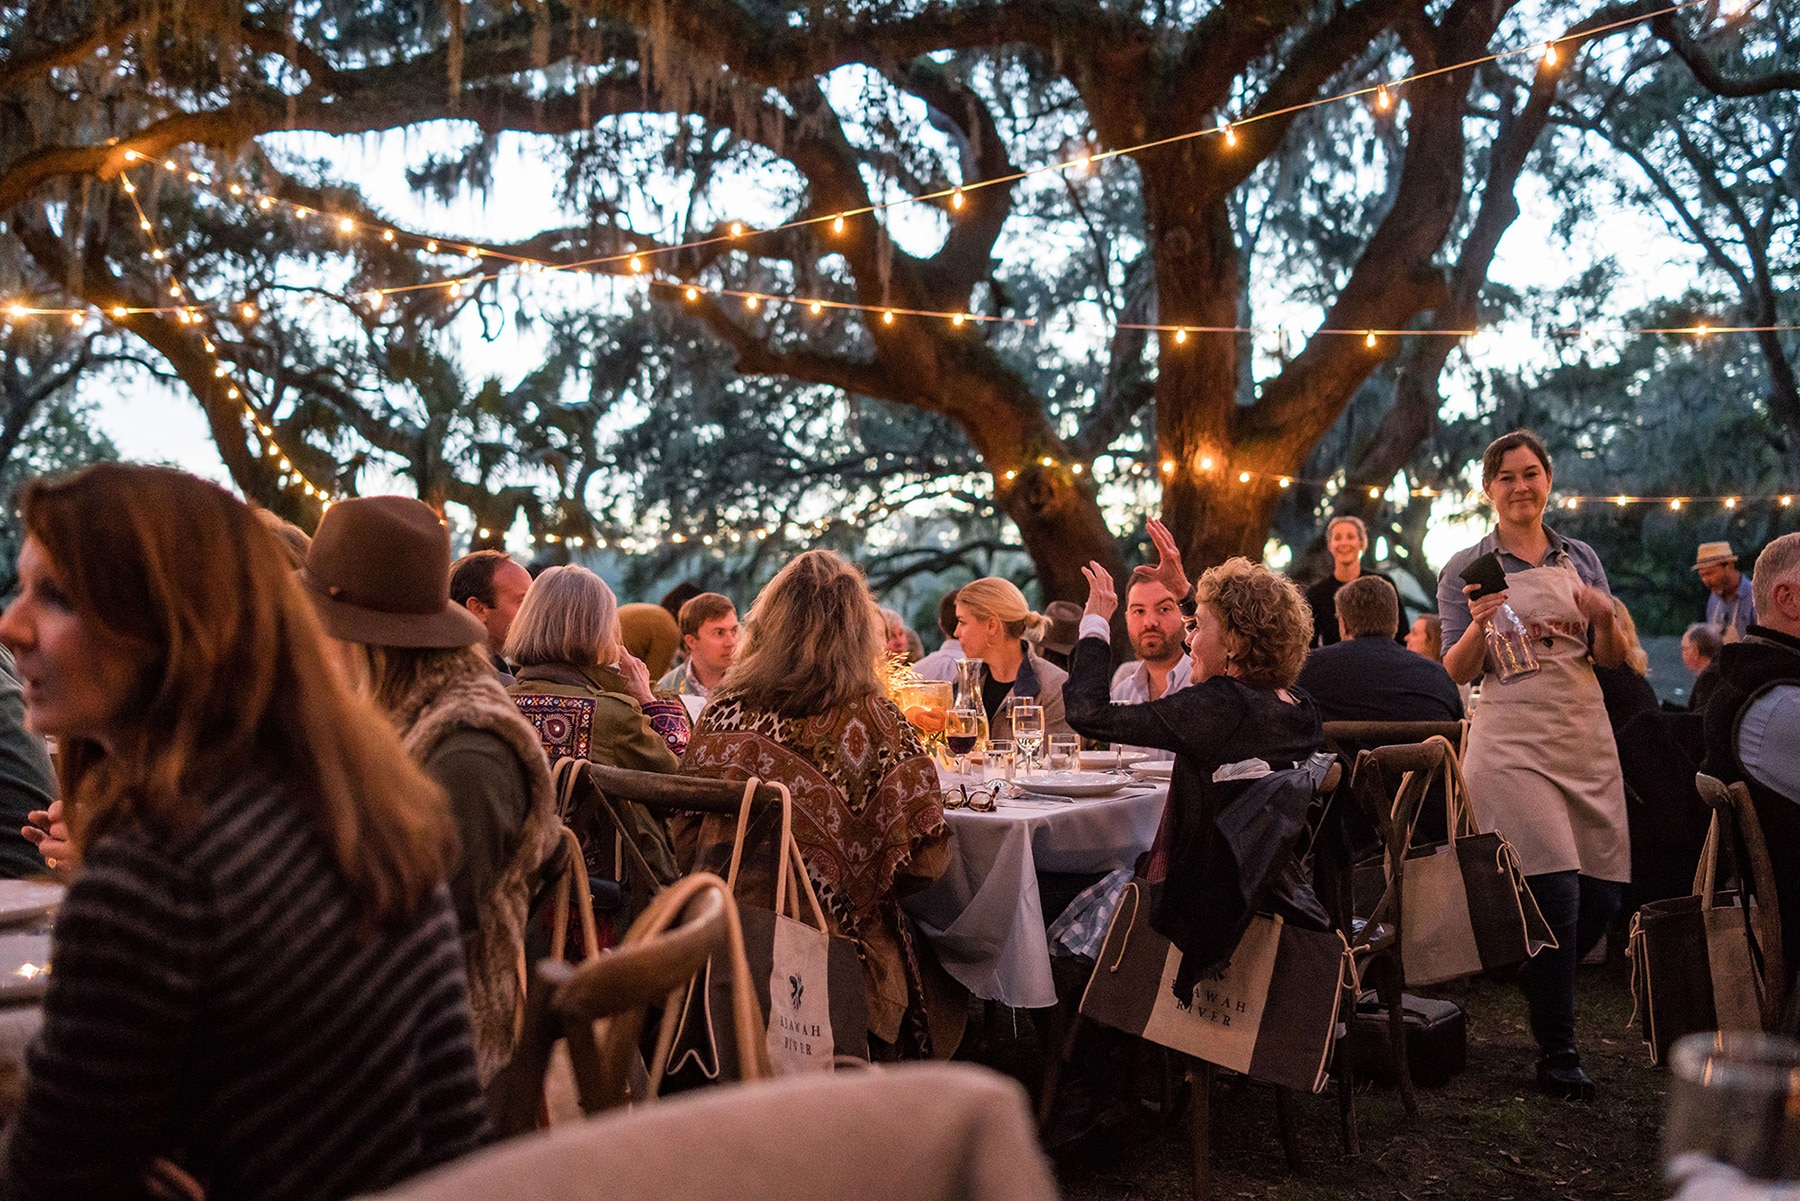 dinner event outside under live oak trees